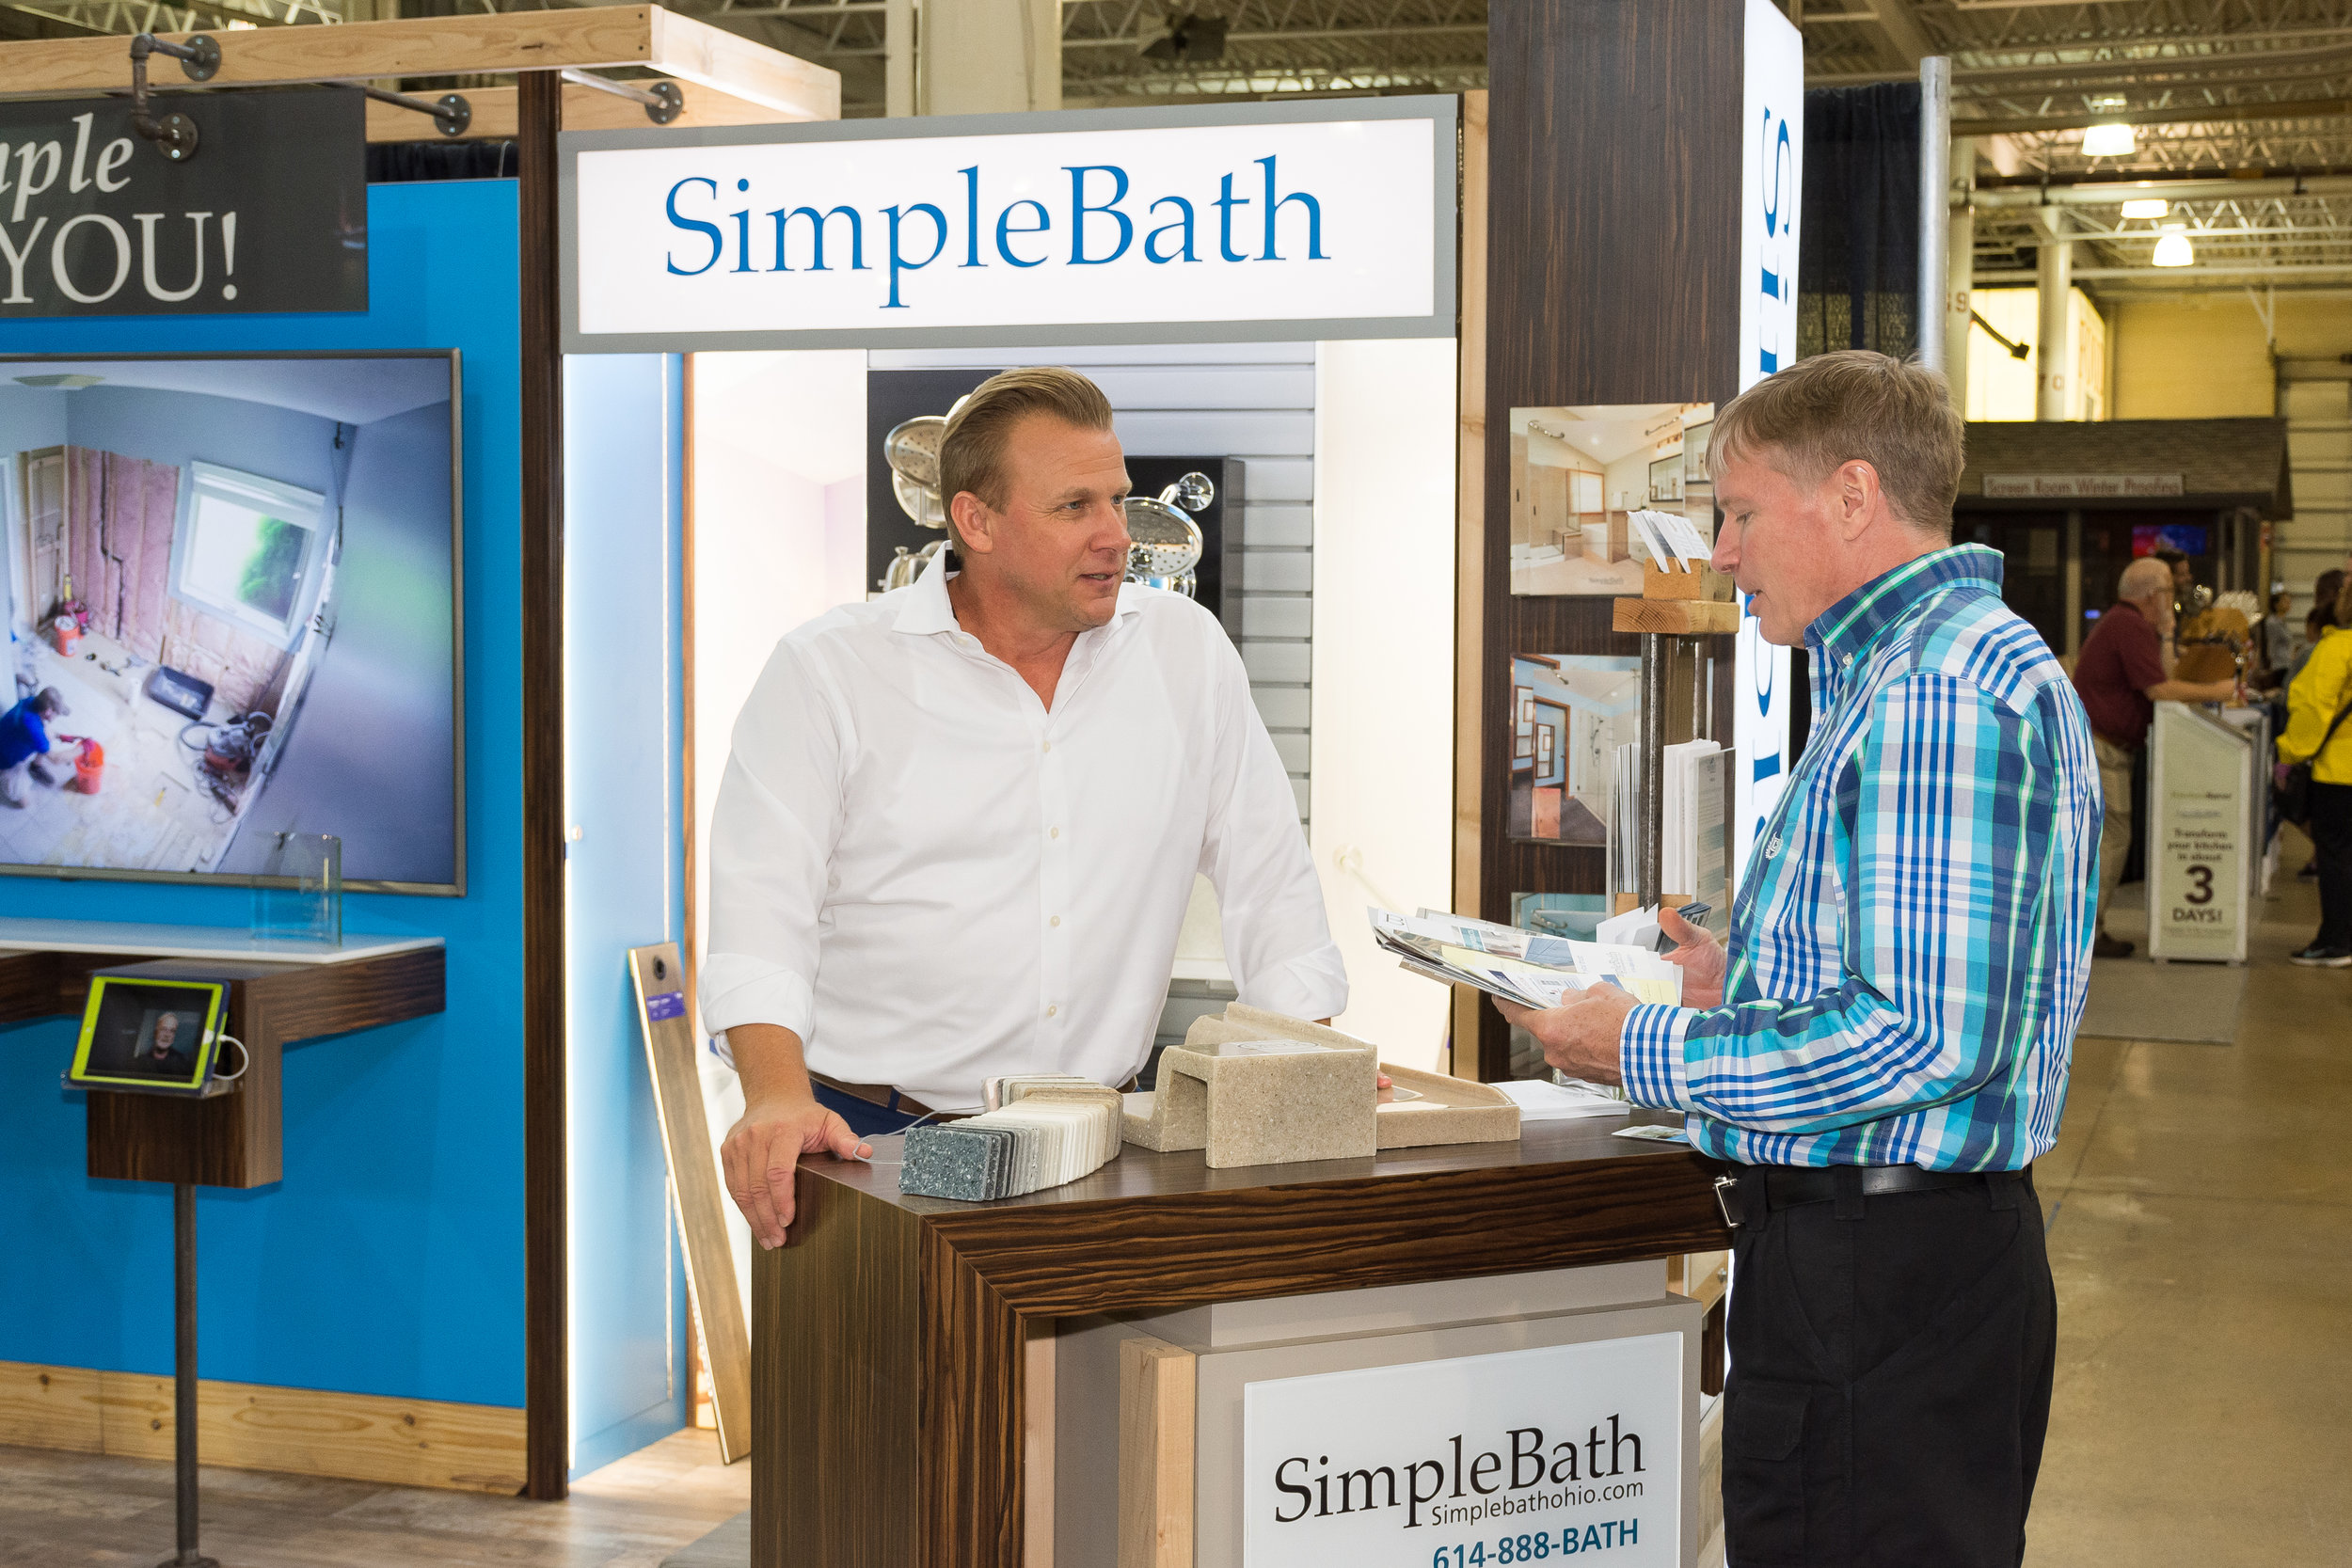 DSC_4495-stage sponsor simple bath and simple kitchen.JPG